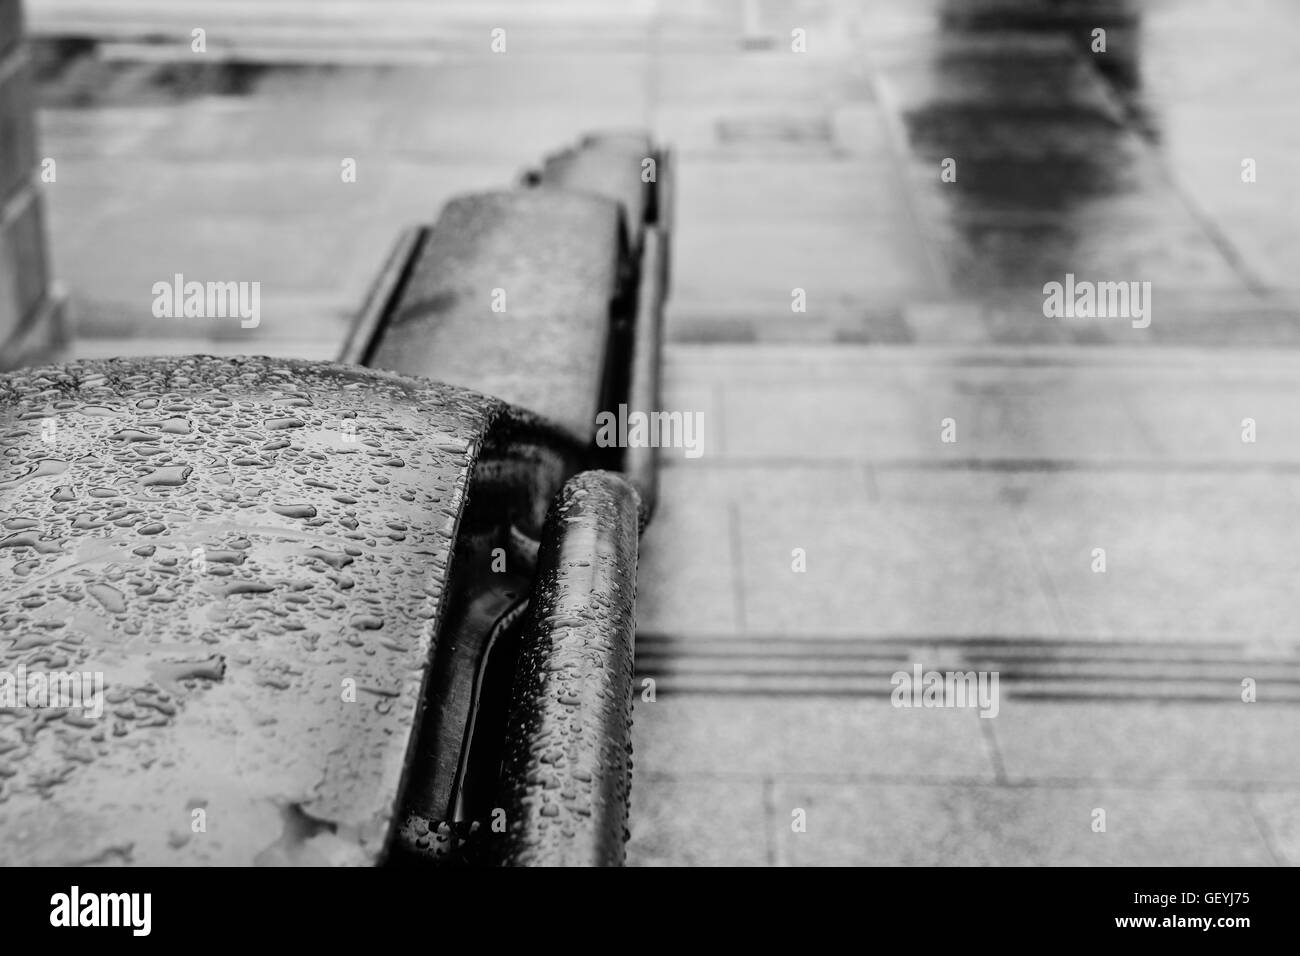 Close-Up Of Water drops On Trafalgar Square Railings - Stock Image